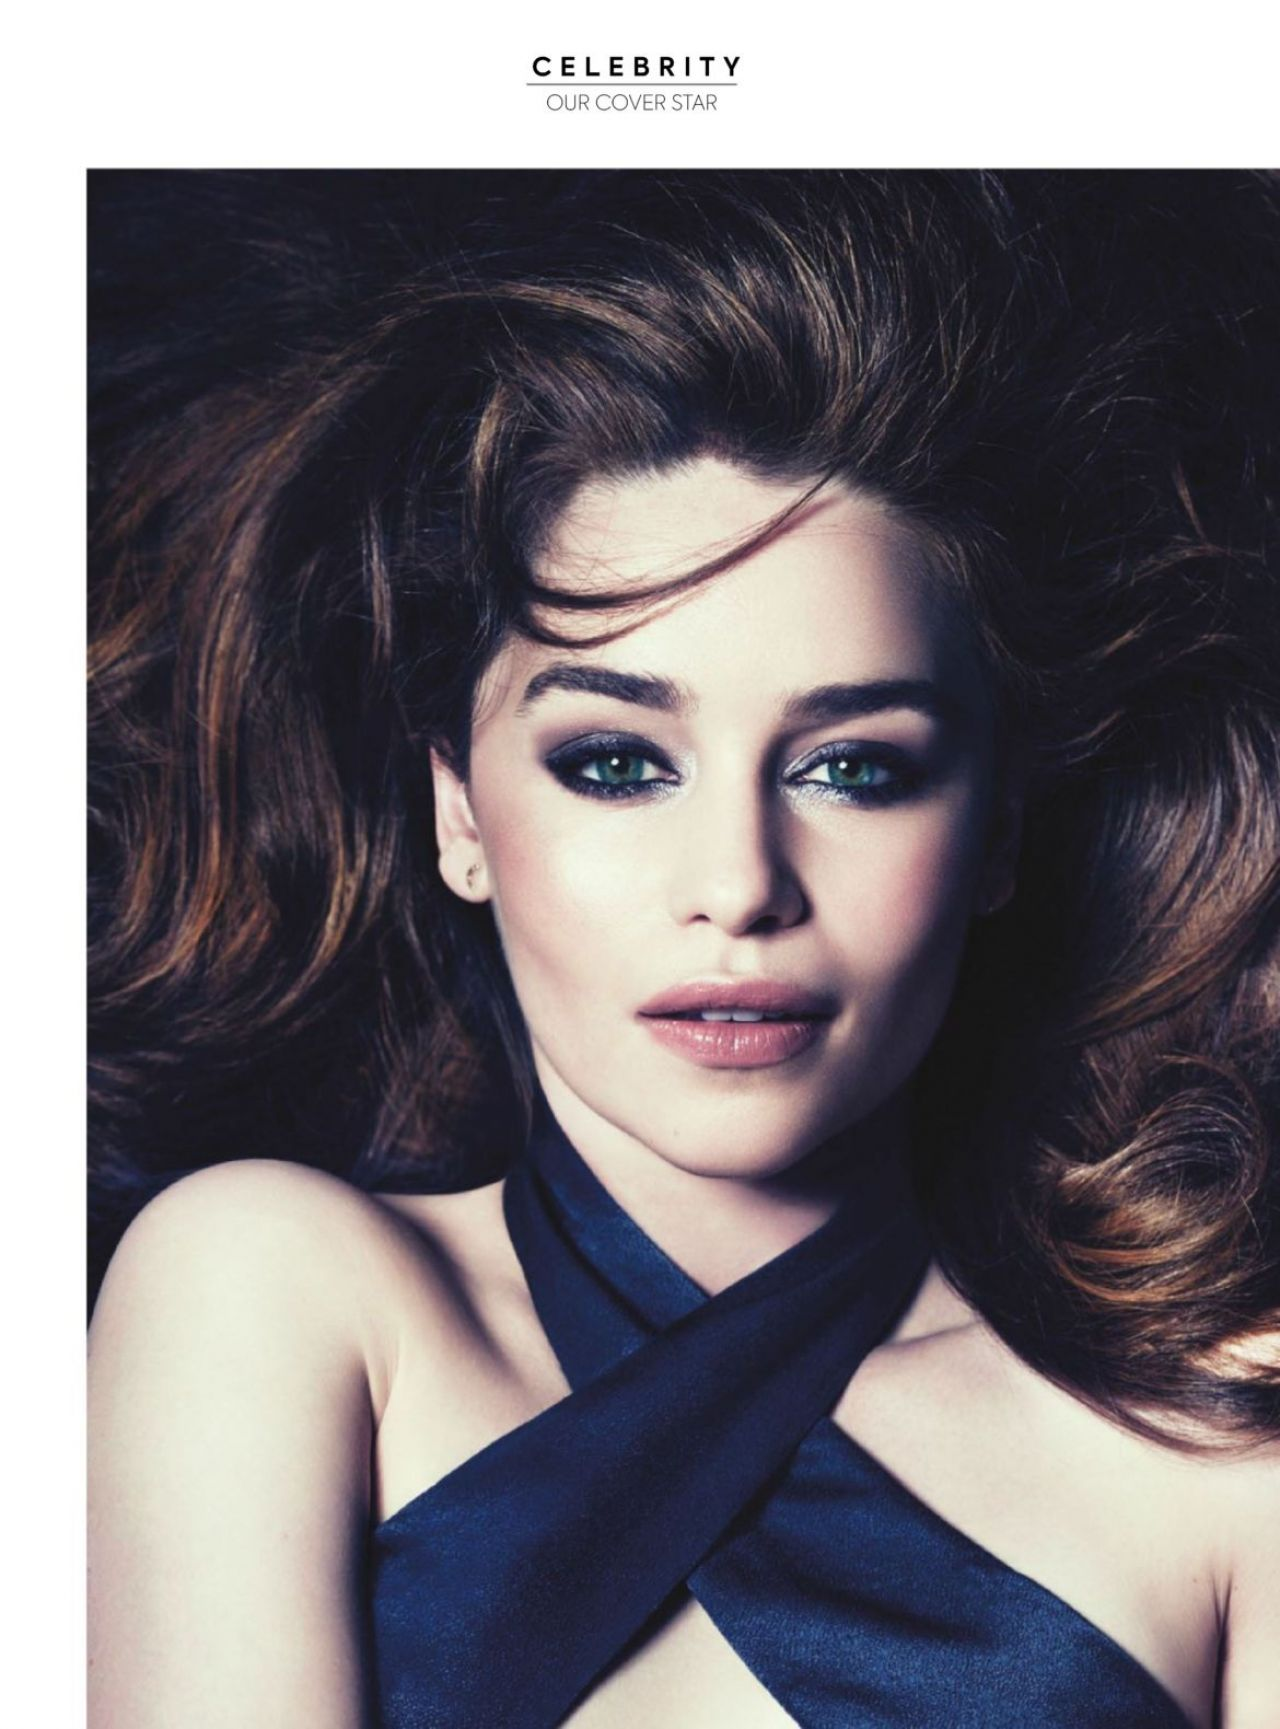 https://celebmafia.com/wp-content/uploads/2018/07/emilia-clarke-the-malaysian-women-s-weekly-june-2018-0.jpg